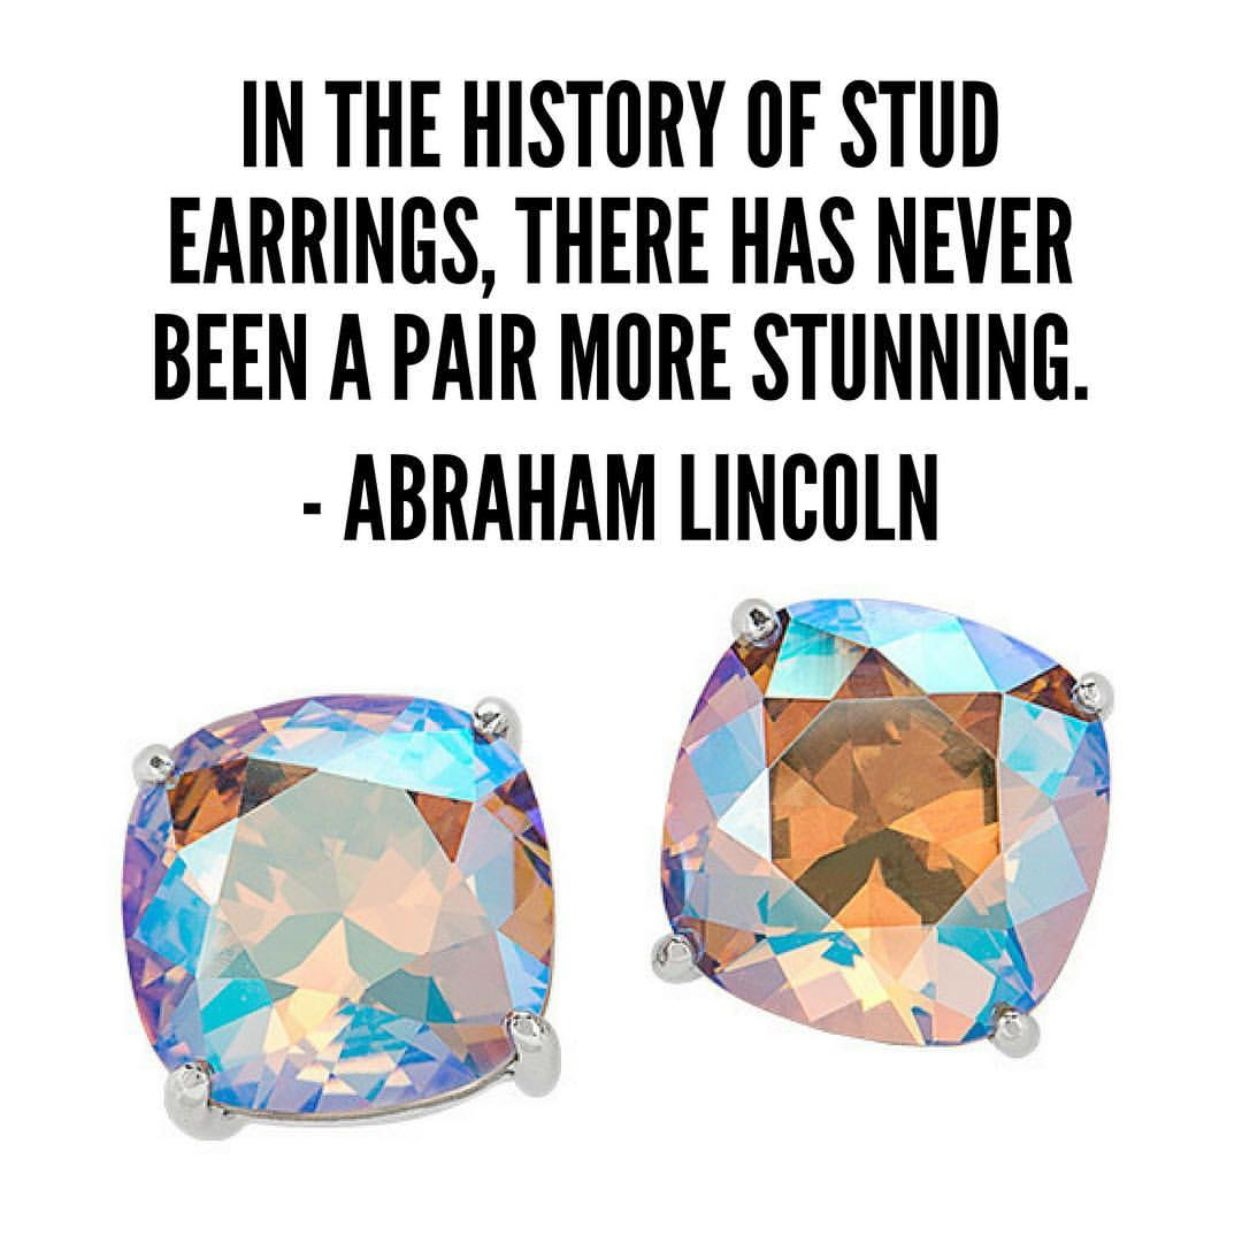 Origami owl in the history of stud earrings there has never origami owl in the history of stud earrings there has never been a jeuxipadfo Image collections